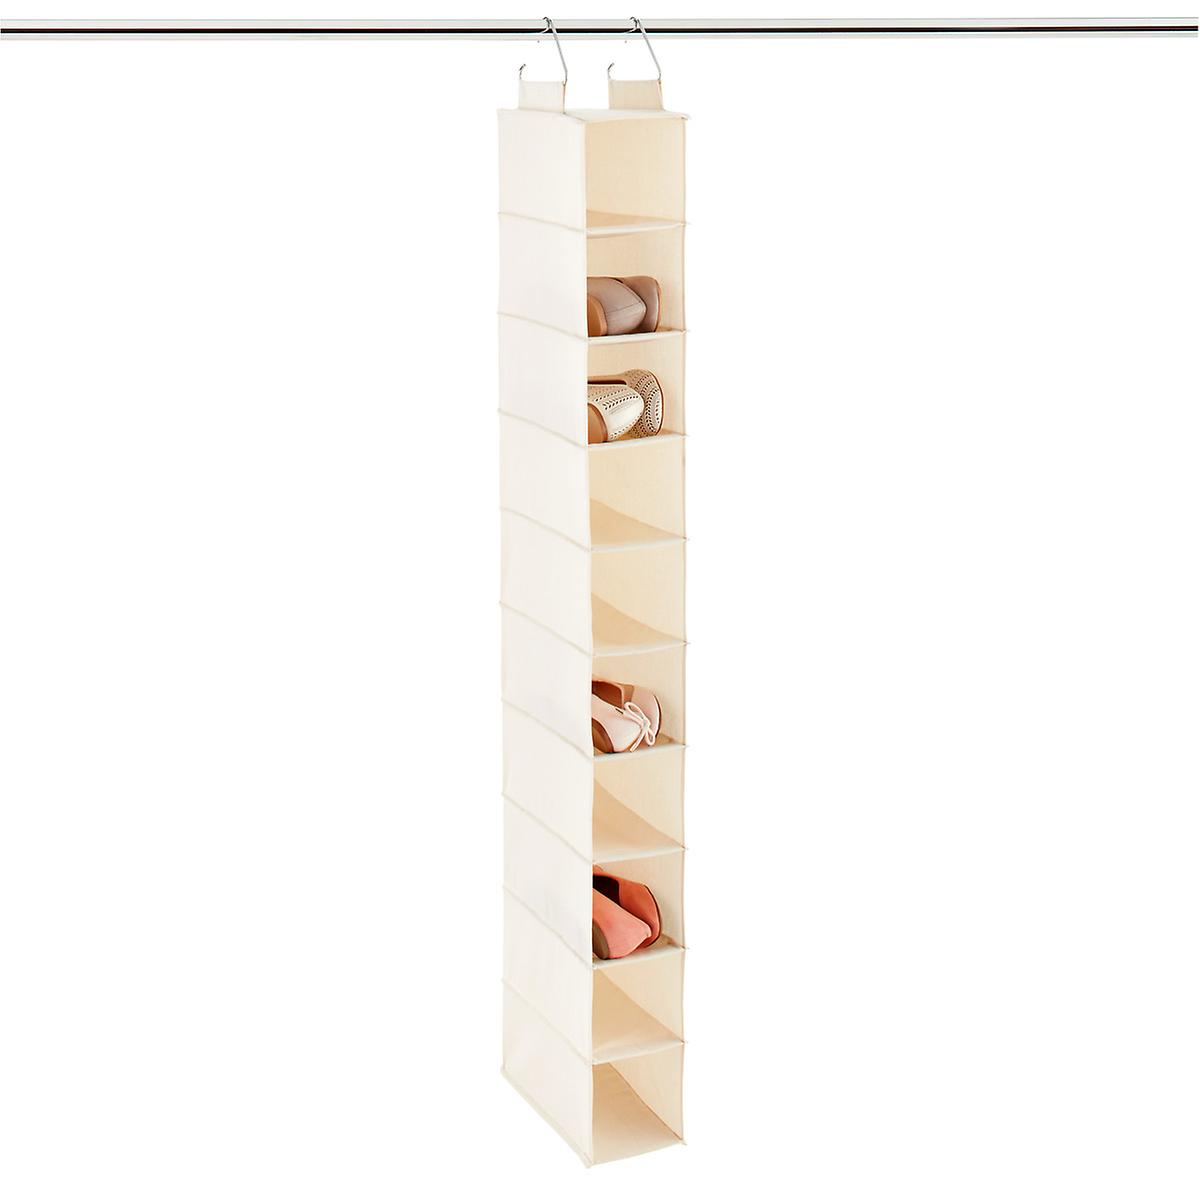 Shoe Organizer 10 Compartment Natural Canvas Hanging Shoe Organizer The